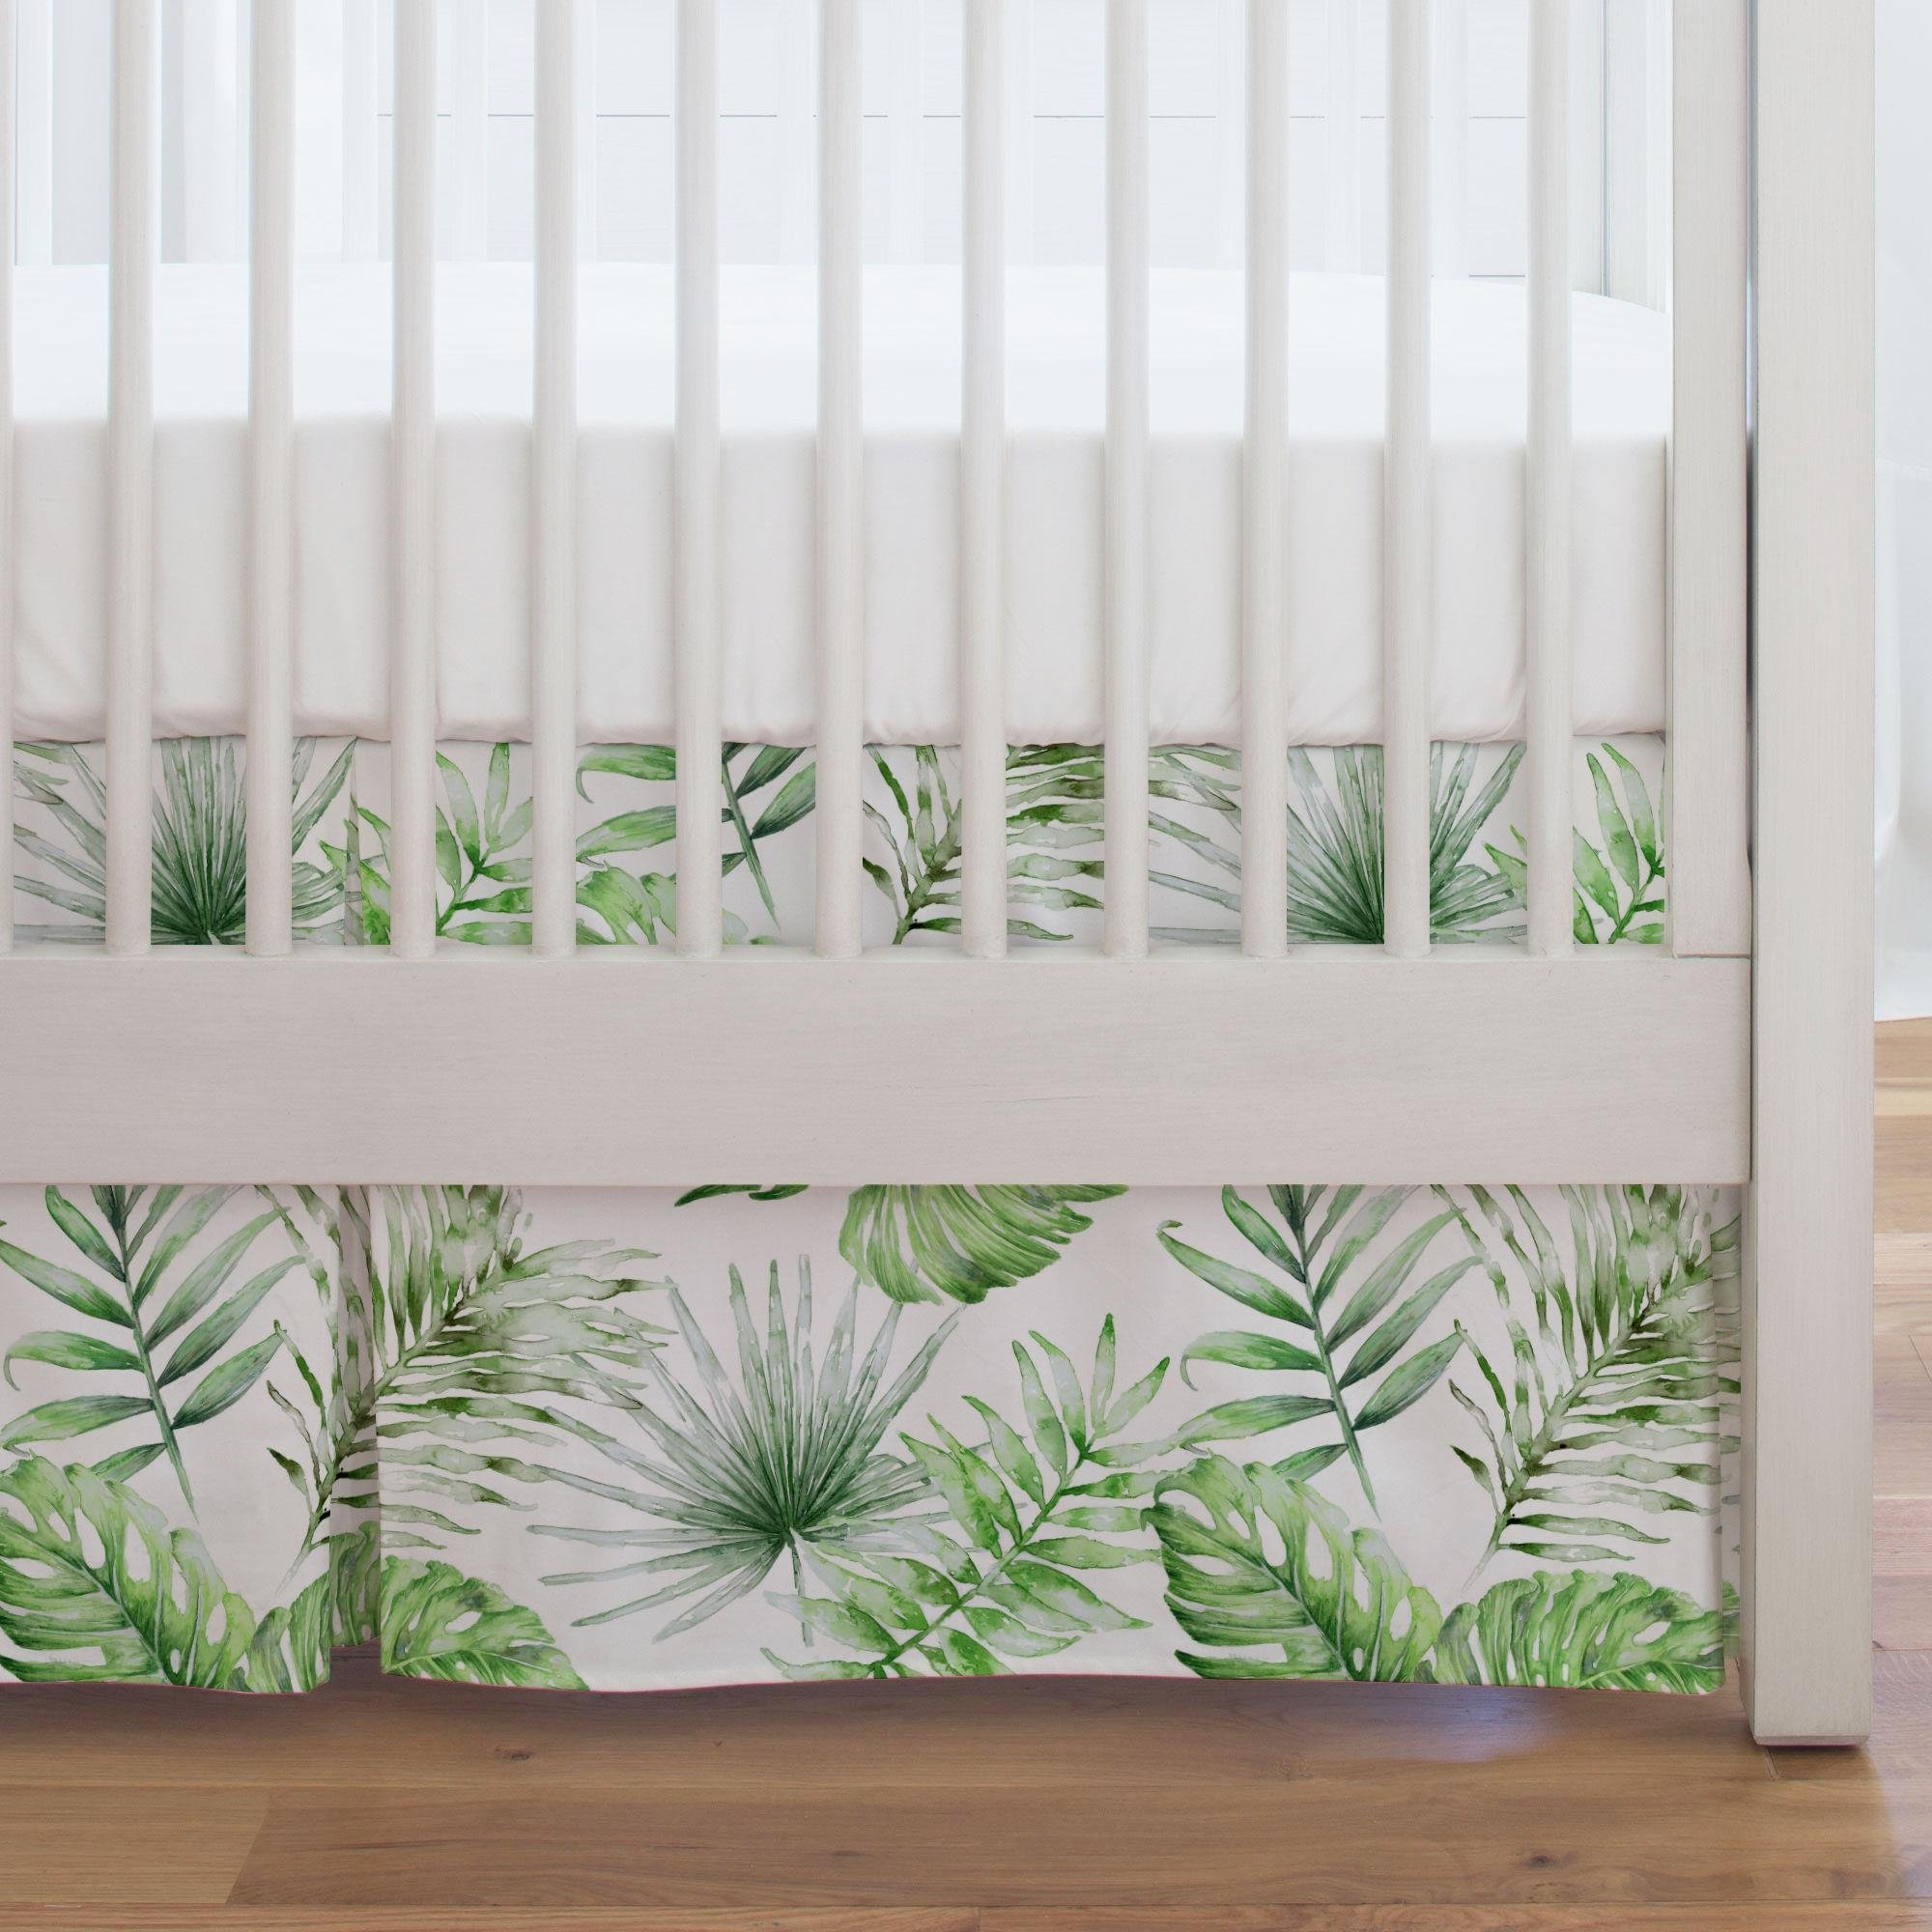 Carousel Designs Green Painted Tropical Crib Skirt Single-Pleat 17-Inch Length - Organic 100% Cotton Crib Skirt - Made in The USA by Carousel Designs